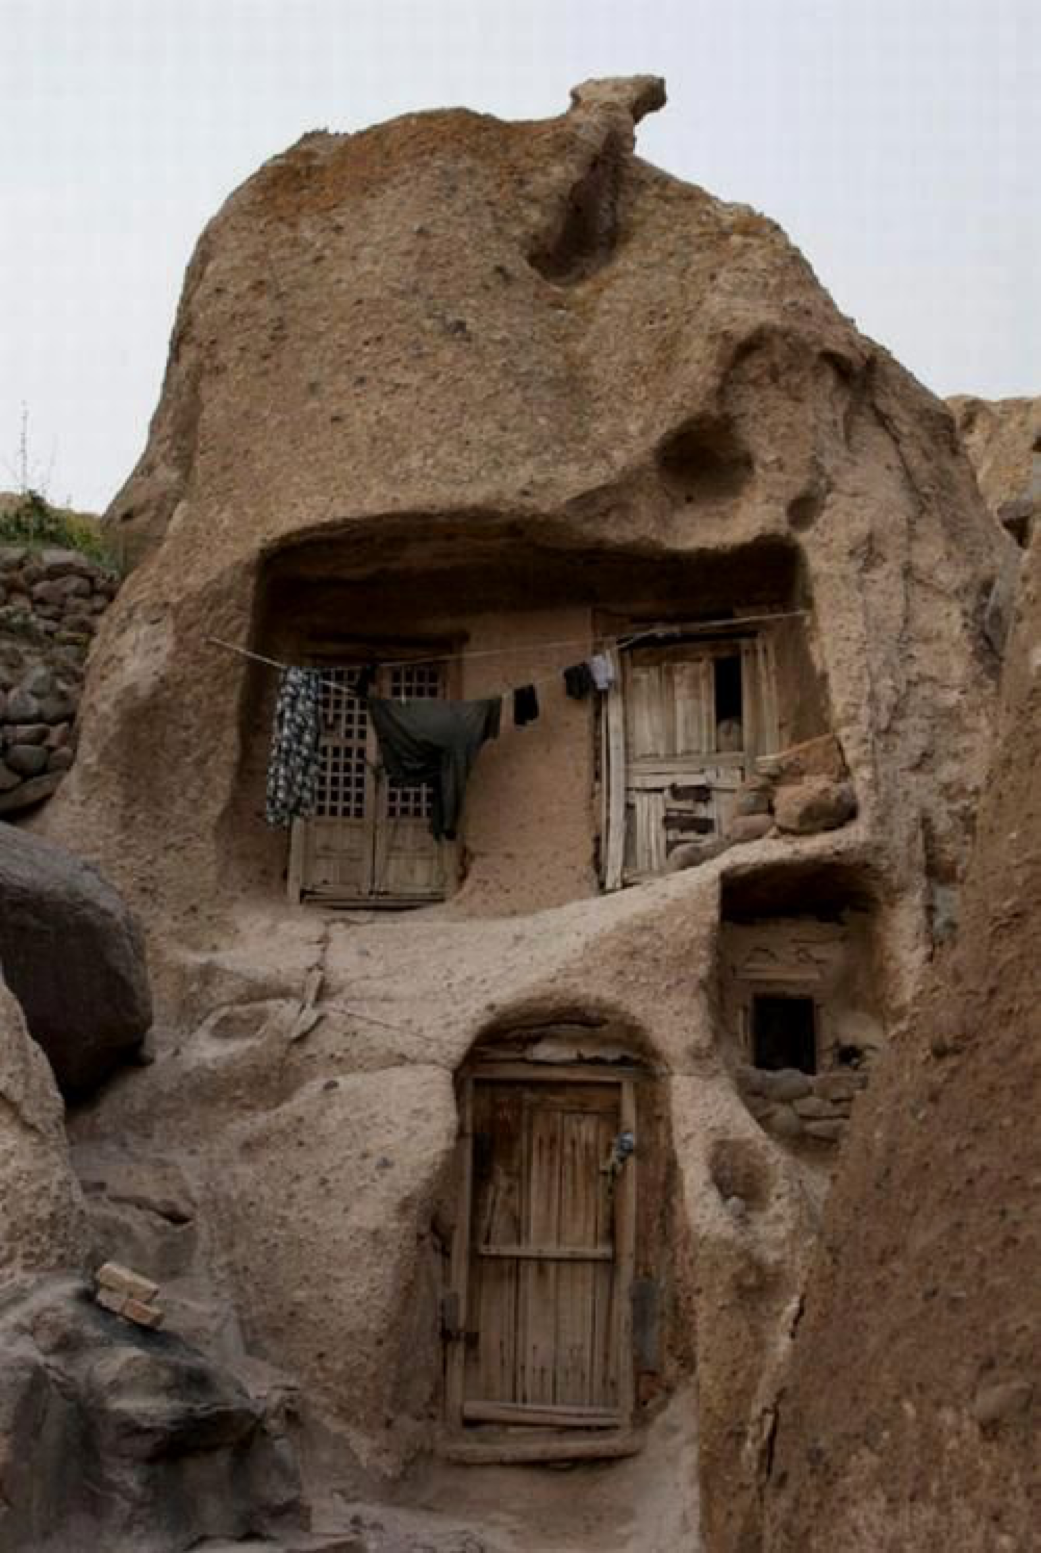 A 700-year-old home in Iran | Looking Through the Windows of life in ...